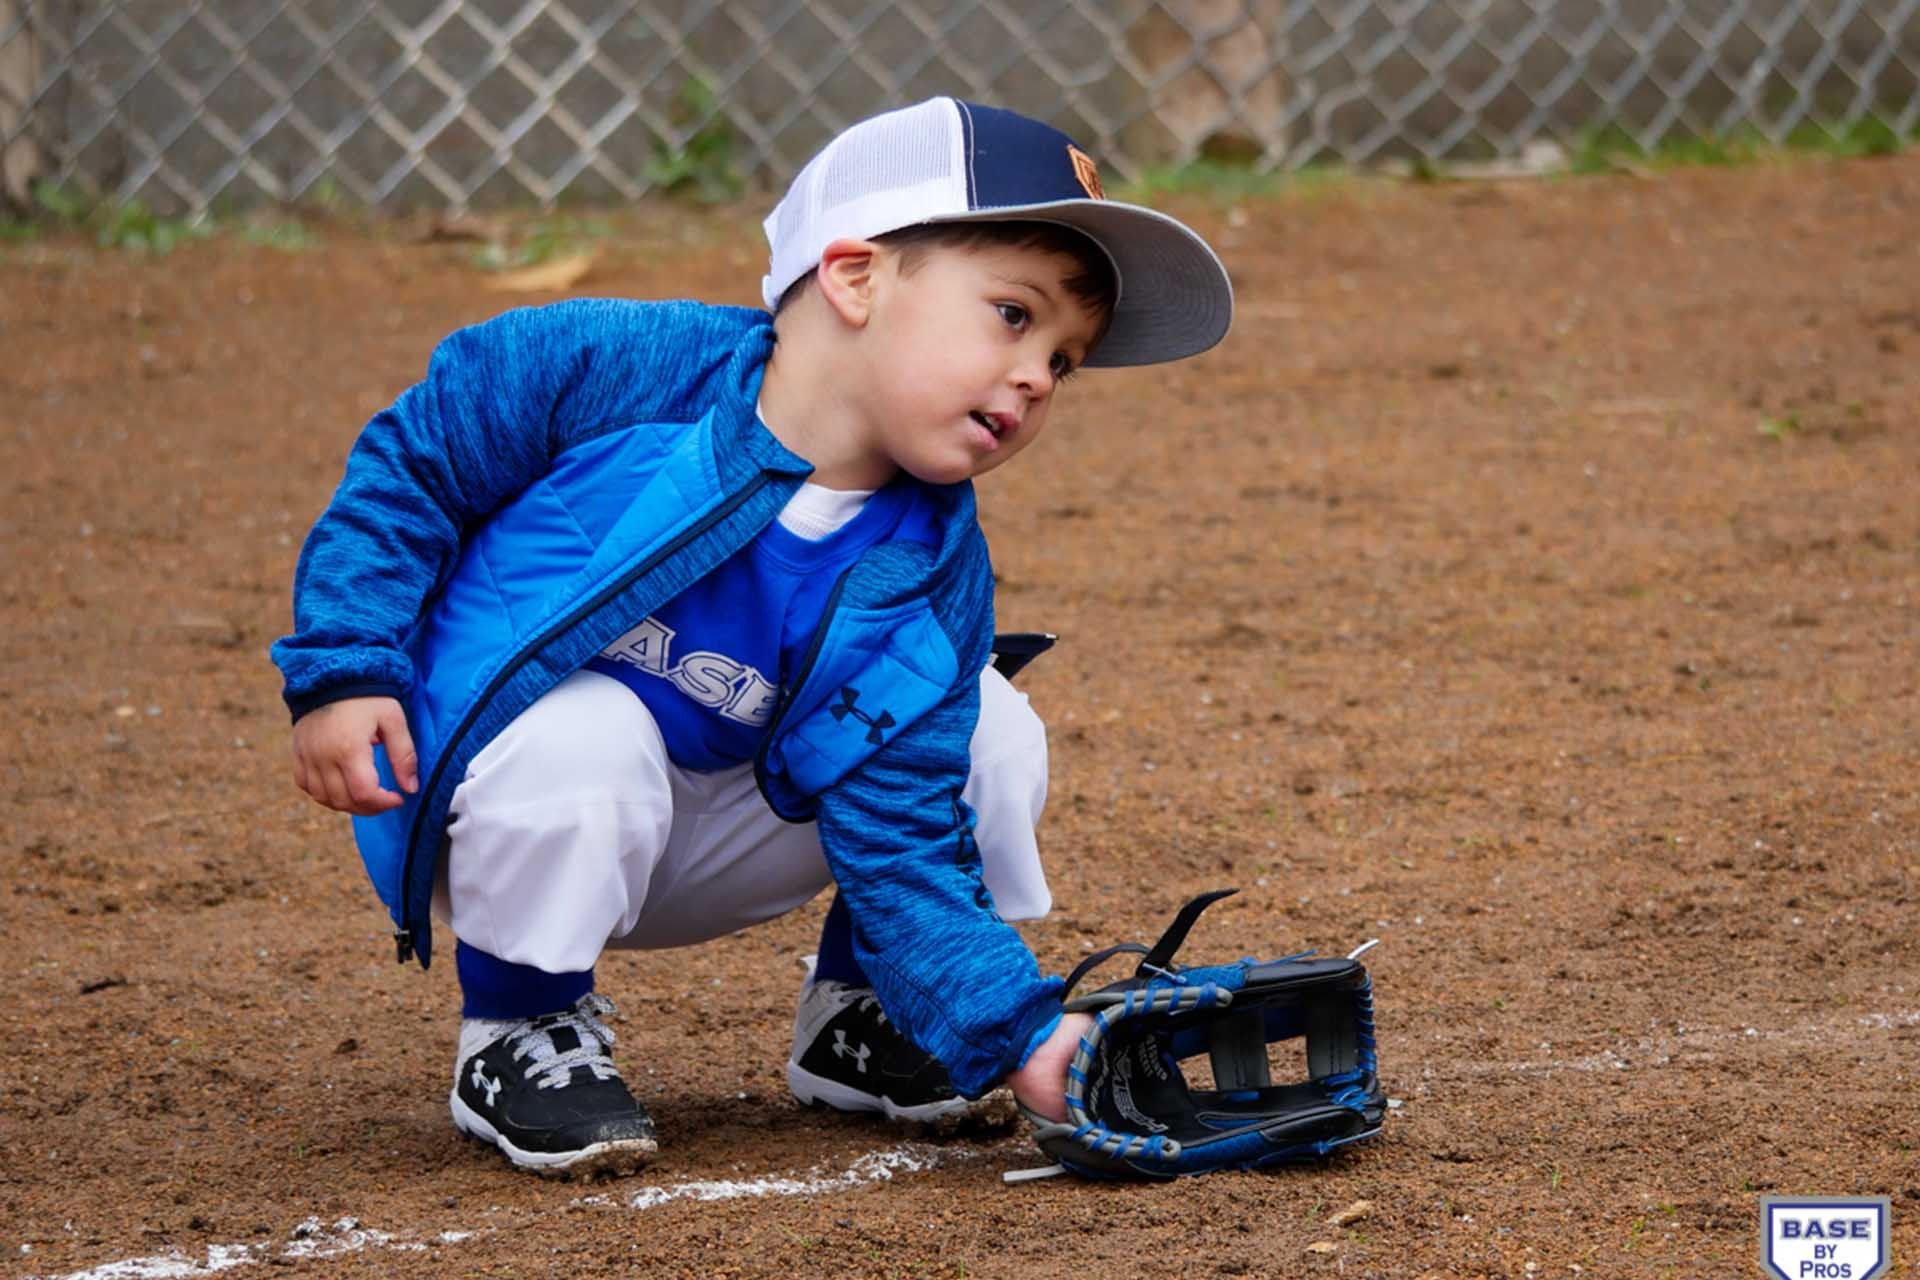 Little Boy Prepares to Field a Baseball